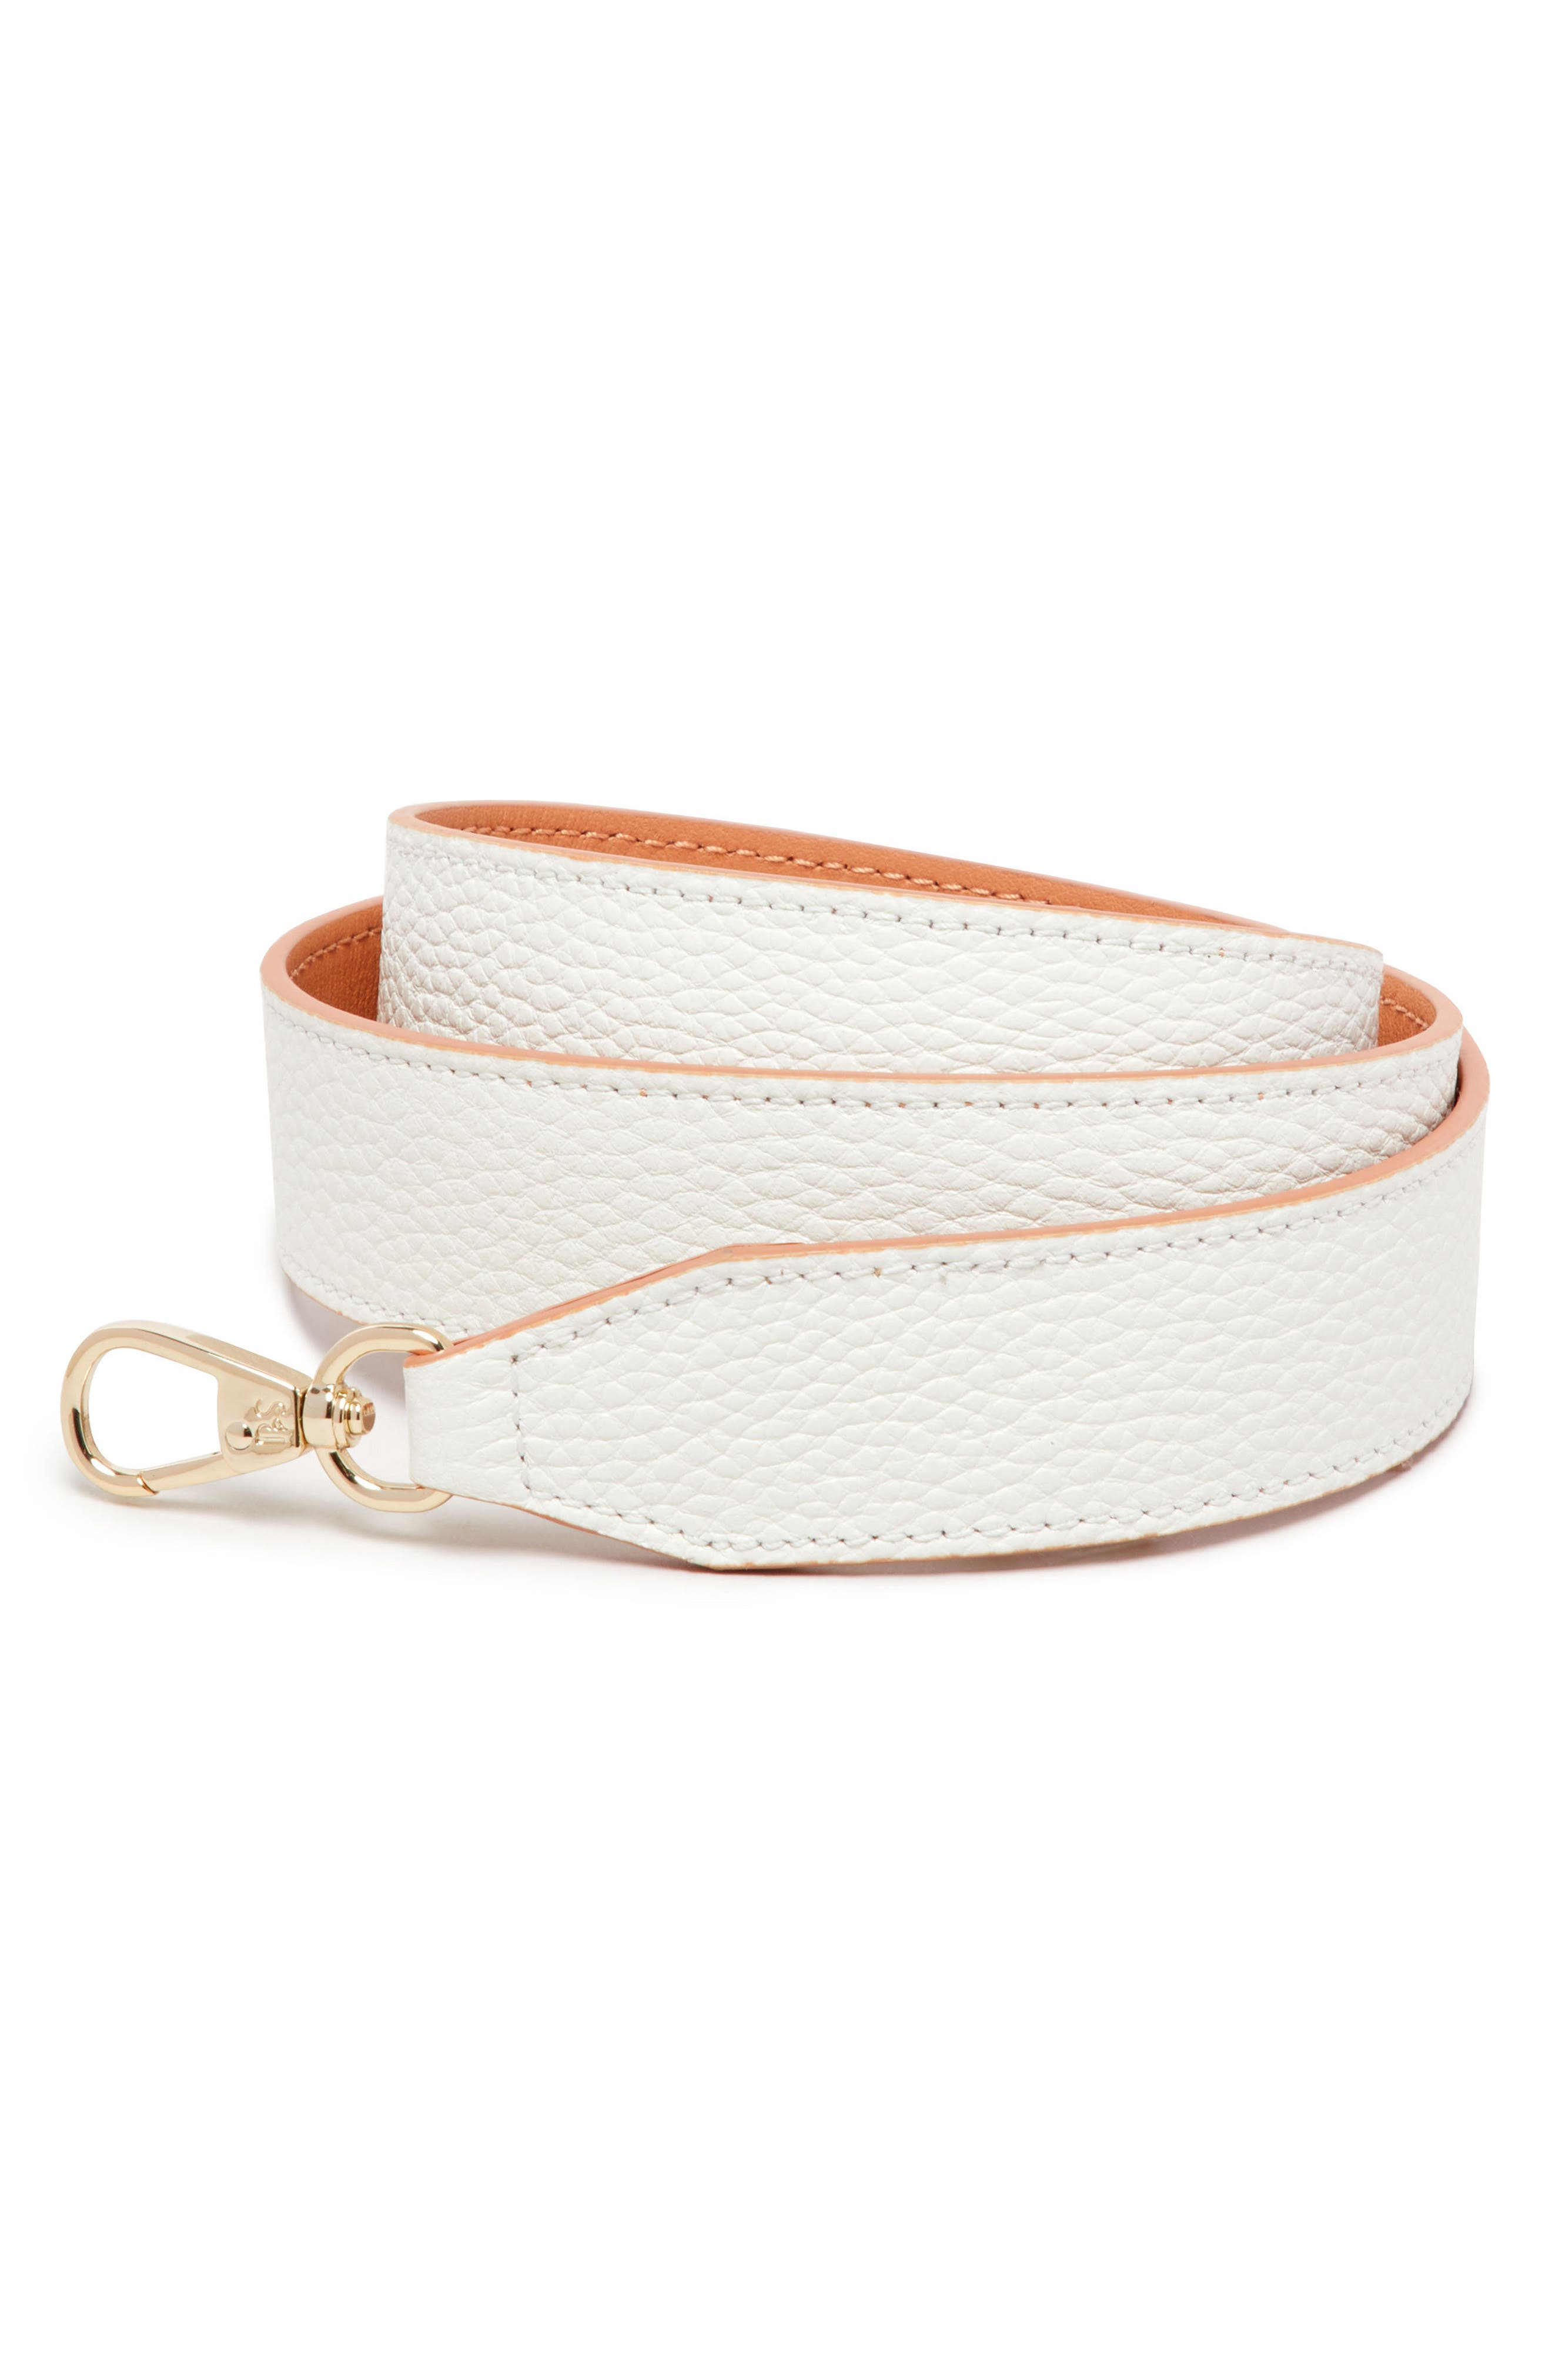 Wide Pebbled Leather Strap,                         Main,                         color, Lily/ Apricot